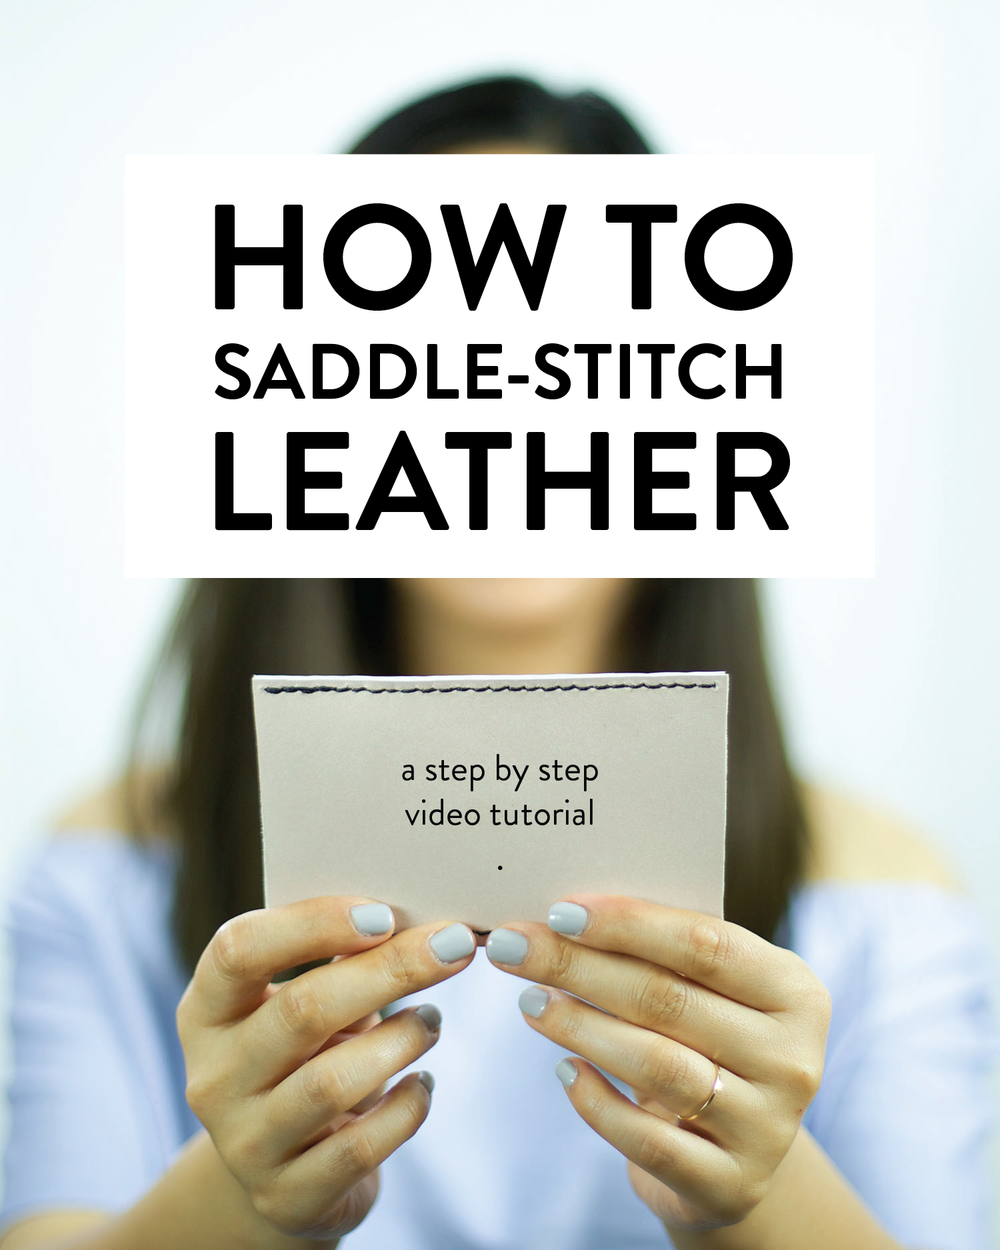 How to saddle-stitch leather - clothstory.com